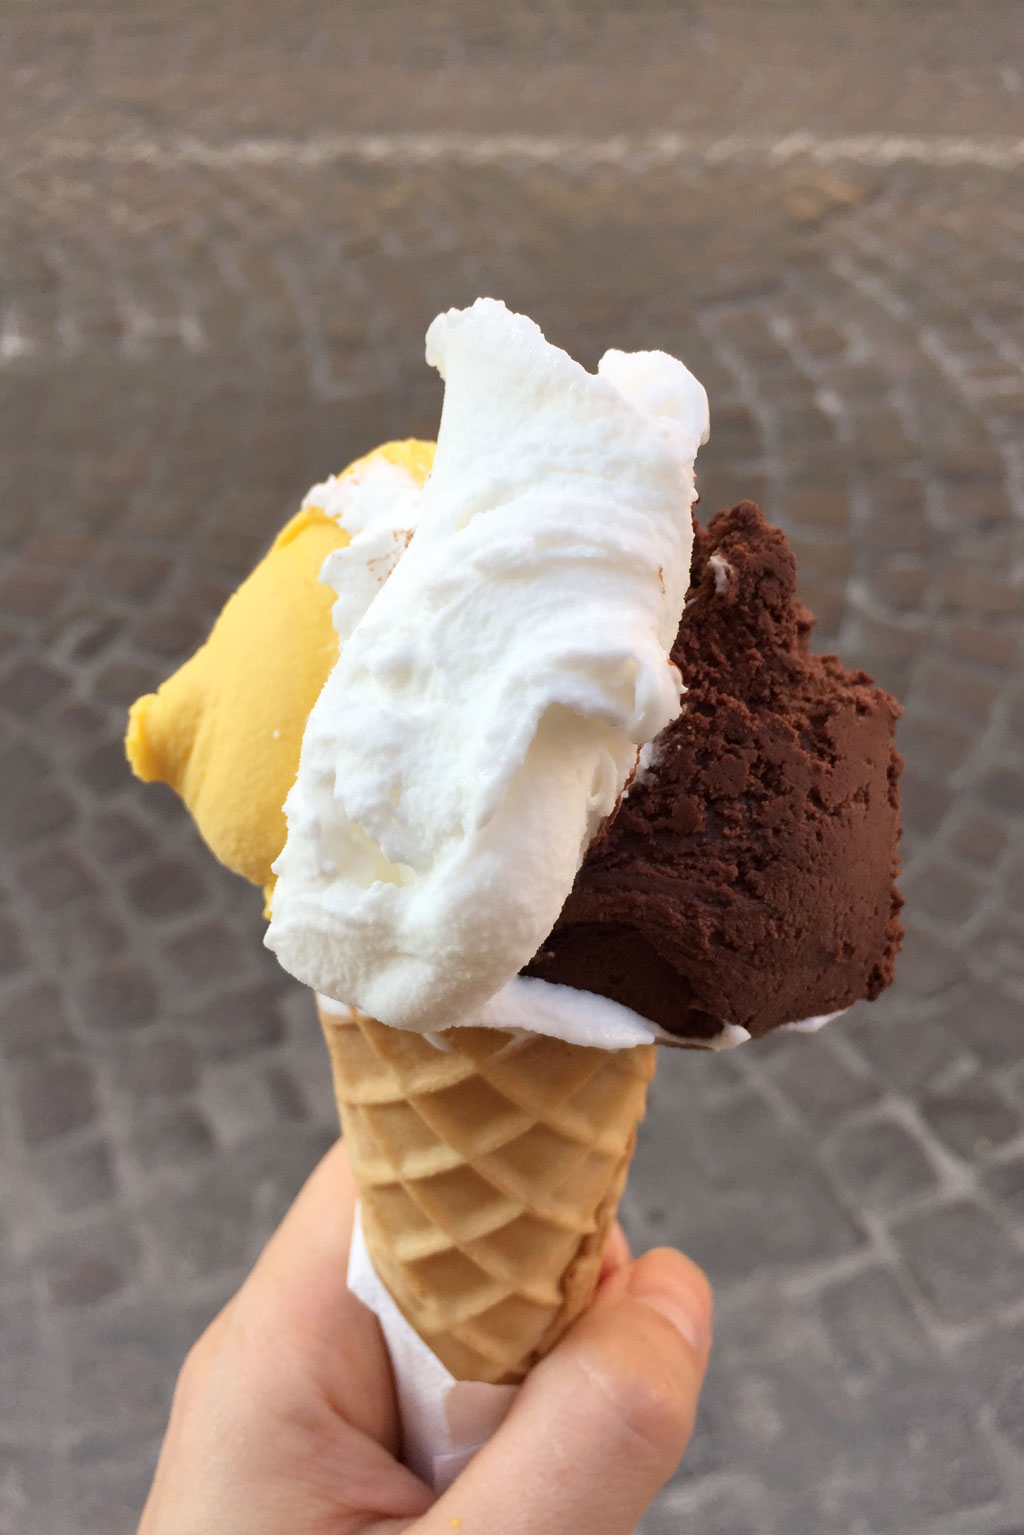 Italienisches Eis – Wonderful Icecream – Eissorten Mango Zitrone Schokolade| SOMEWHERE ELSE